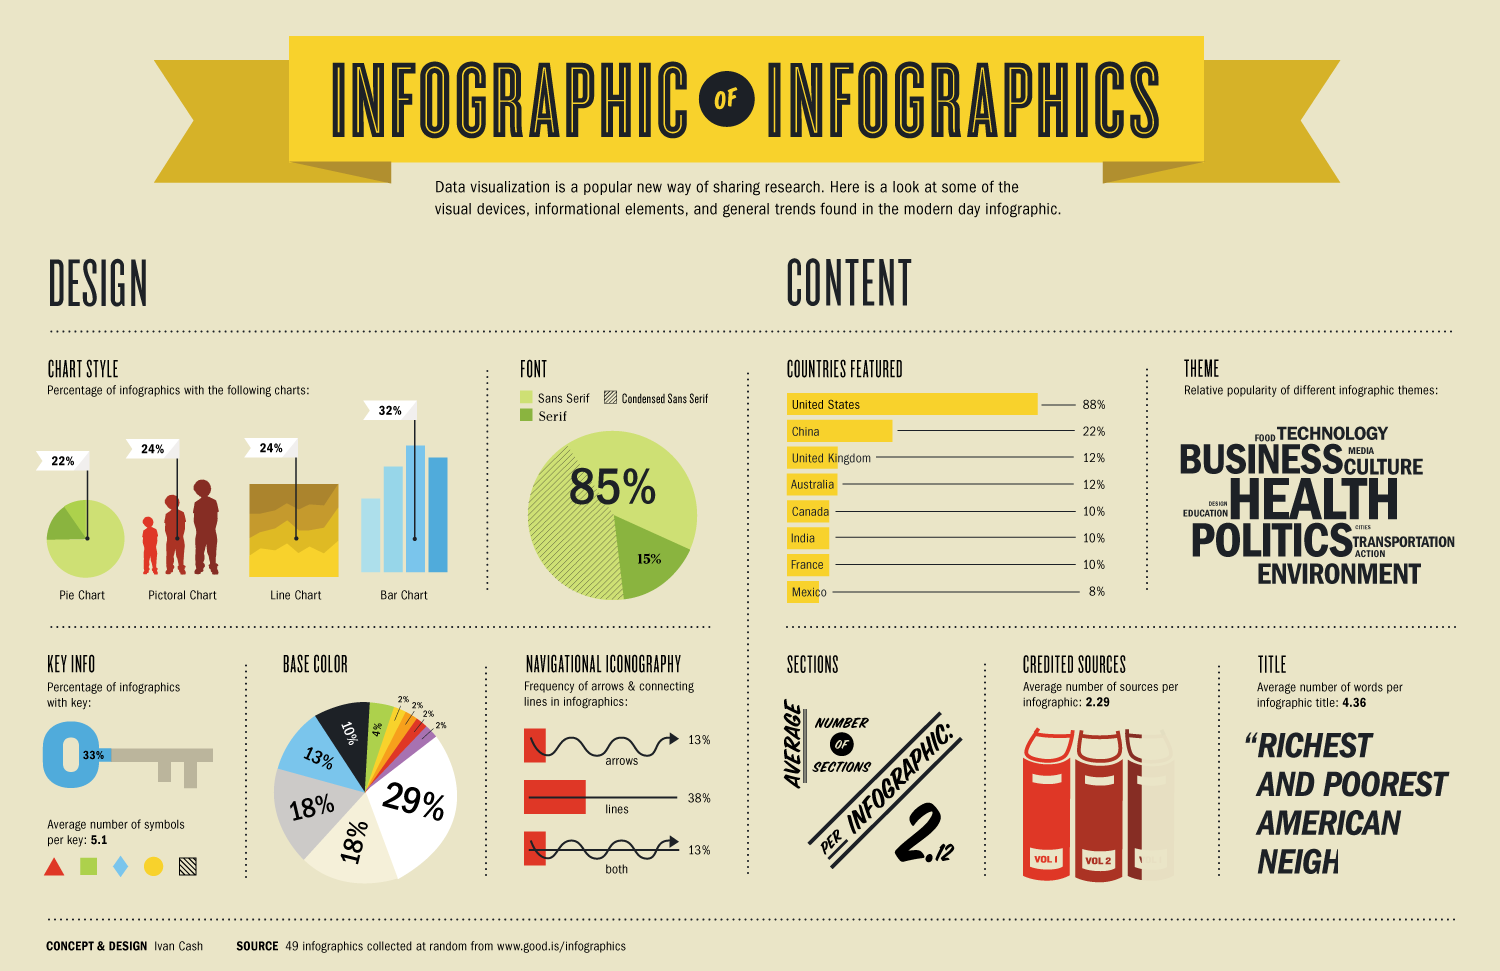 13 Infographic About Graphic Design Images